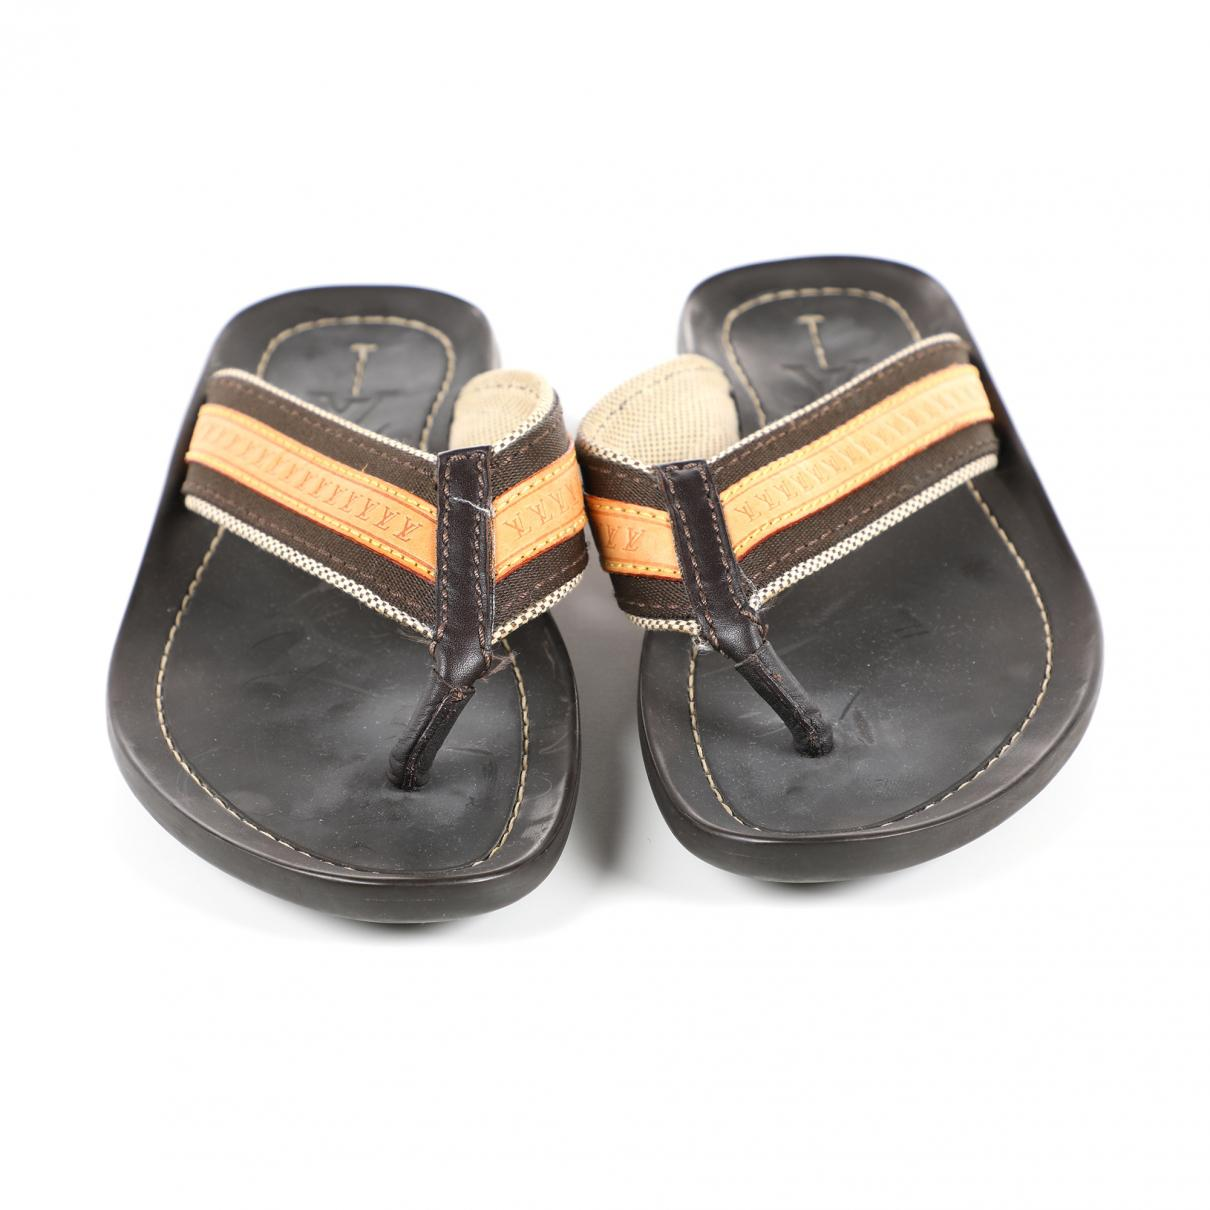 f5c9cc8be Lyst - Louis Vuitton Pre-owned Brown Rubber Sandals in Brown